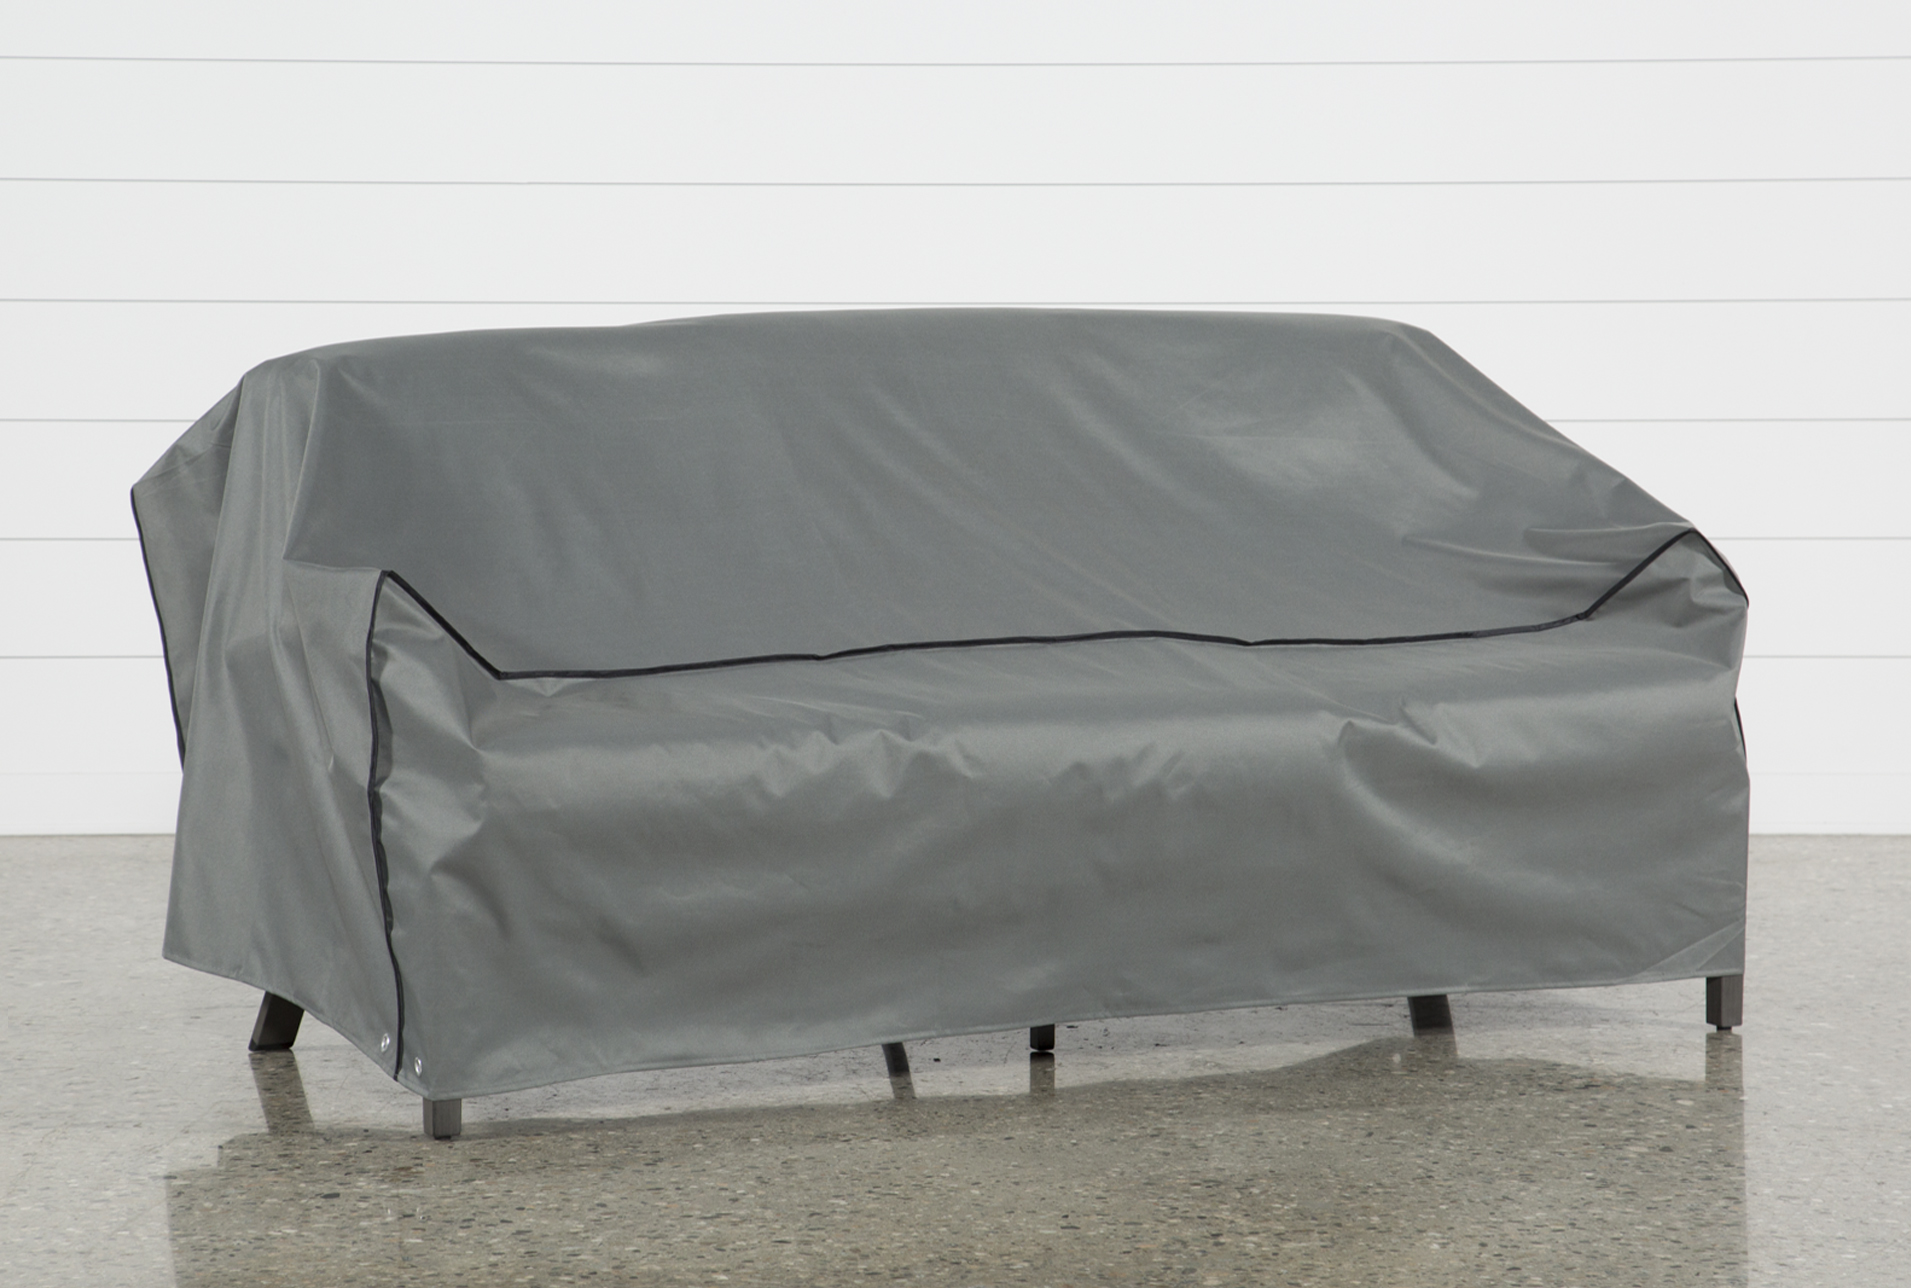 Outdoor Furniture Cover For Sofa   360